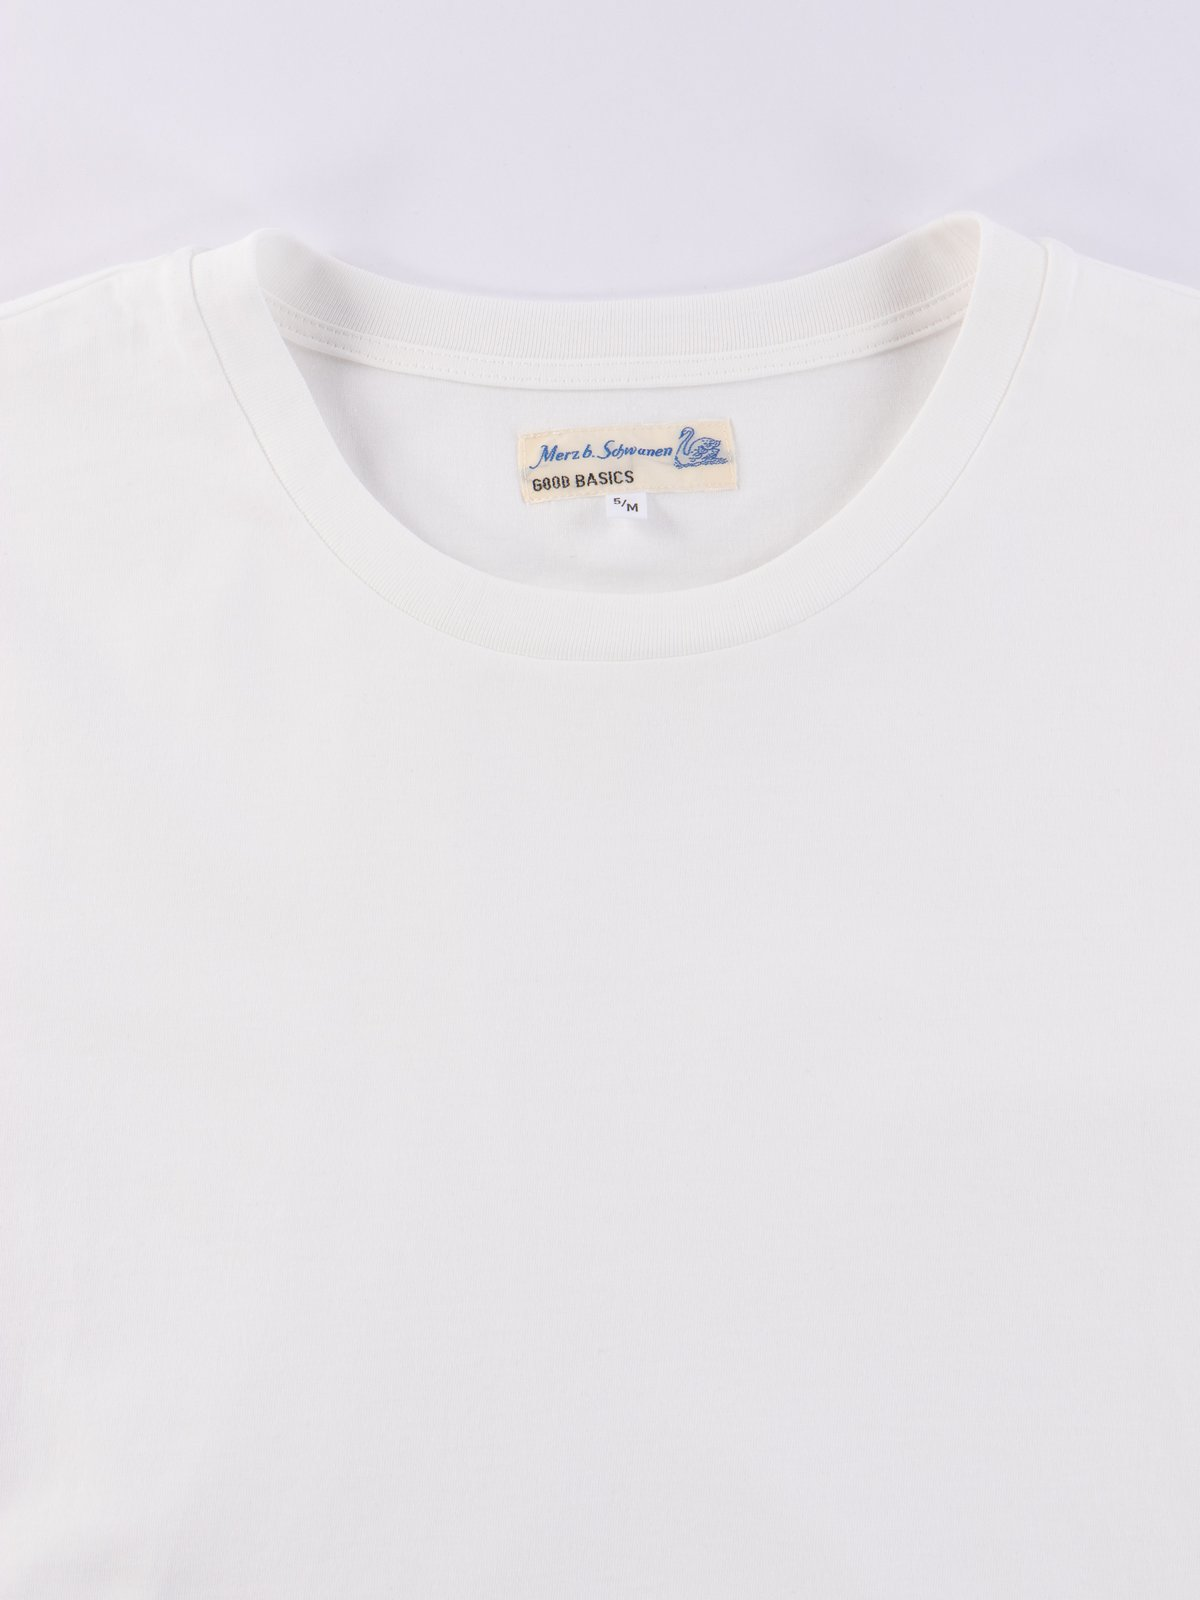 White Good Basics CT01 Crew Neck Tee - Image 3